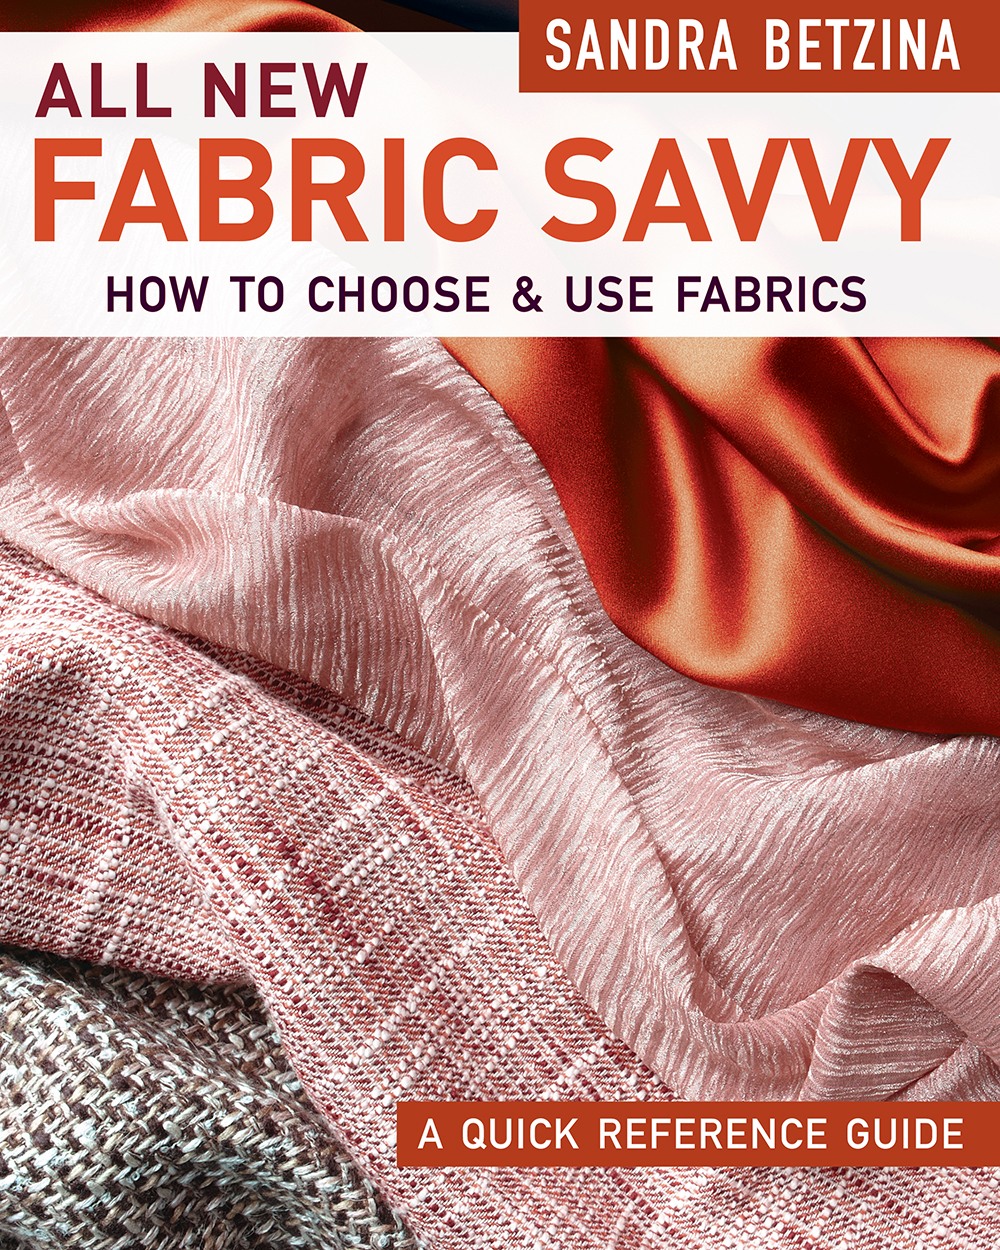 All New Fabric Savvy book by Sandra Betzina